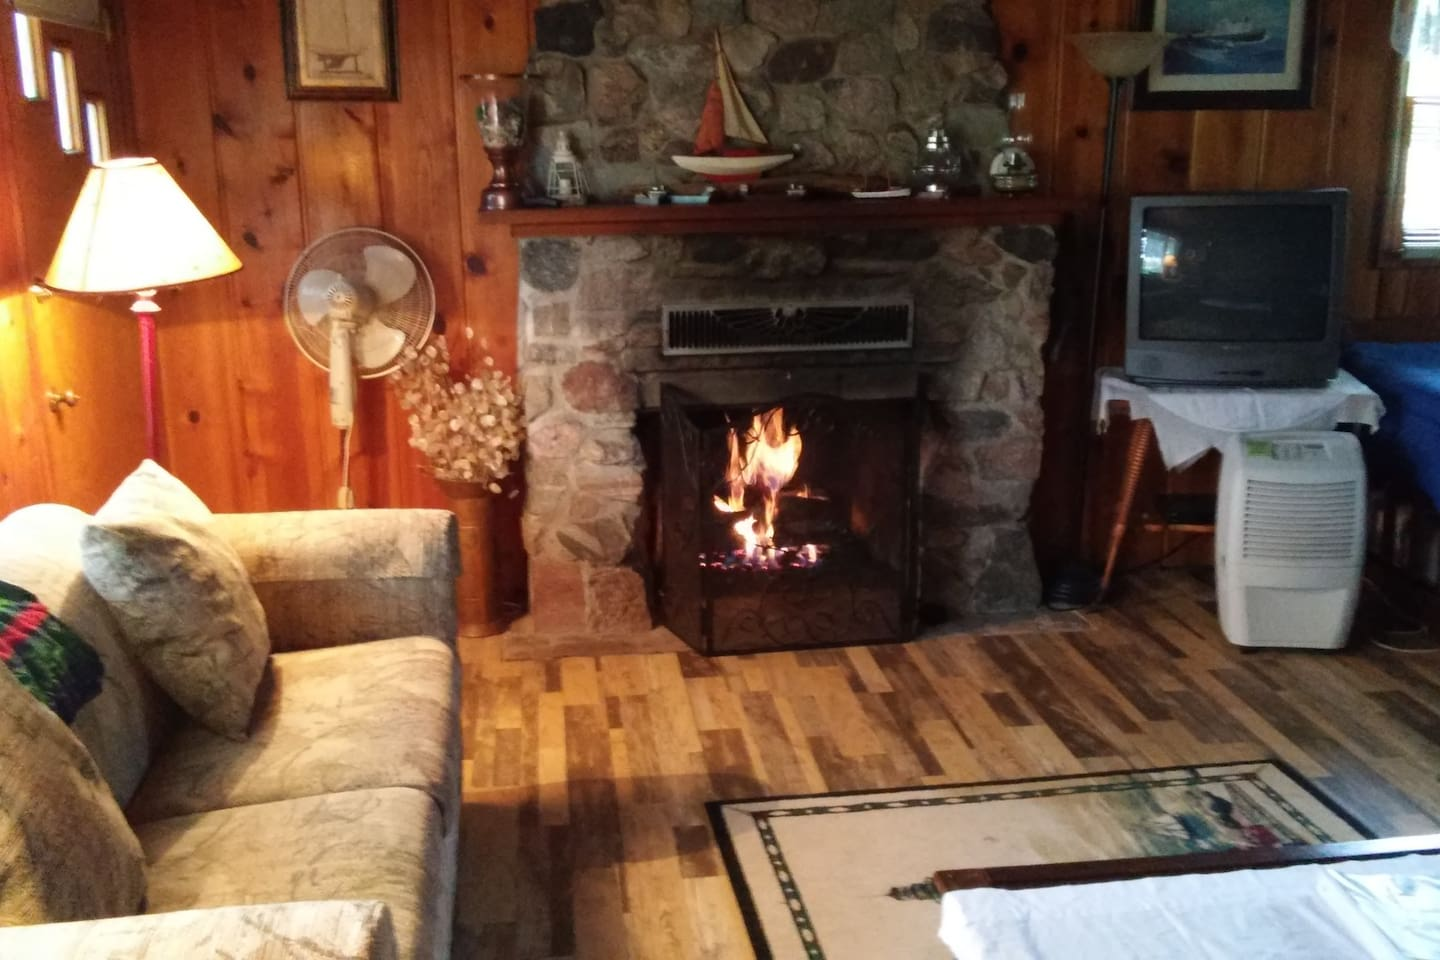 Pfeiffer lakefront cottage has a gas fireplace and can sleep up to 6.  The cottage sits back a bit from Lake Huron but it has gorgeous views!